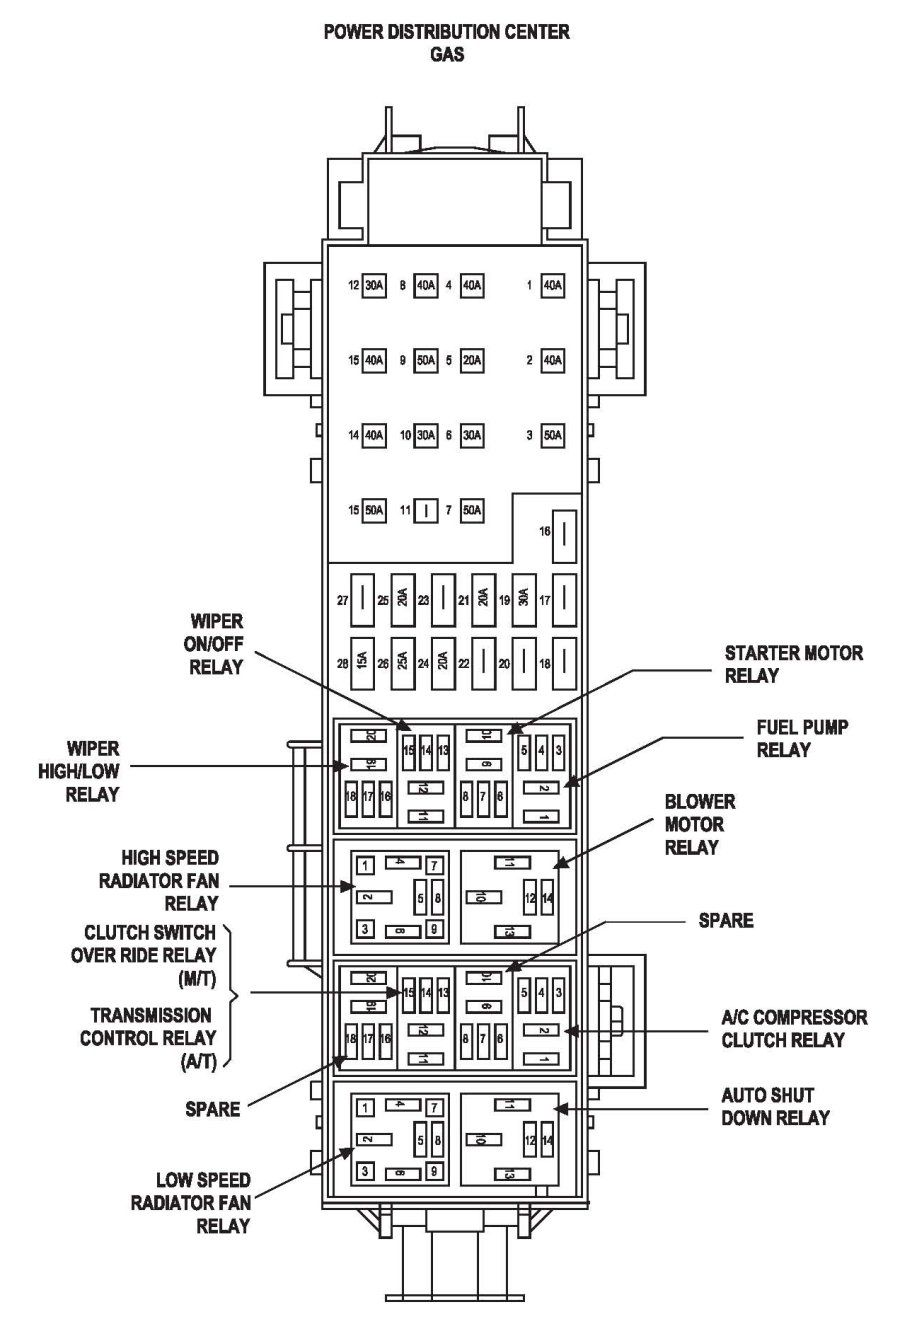 b3536c3739783eb19f827744cc42c3c4 jeep liberty fuse box diagram image details jeep liberty 2005 jeep wrangler fuse box diagram at crackthecode.co